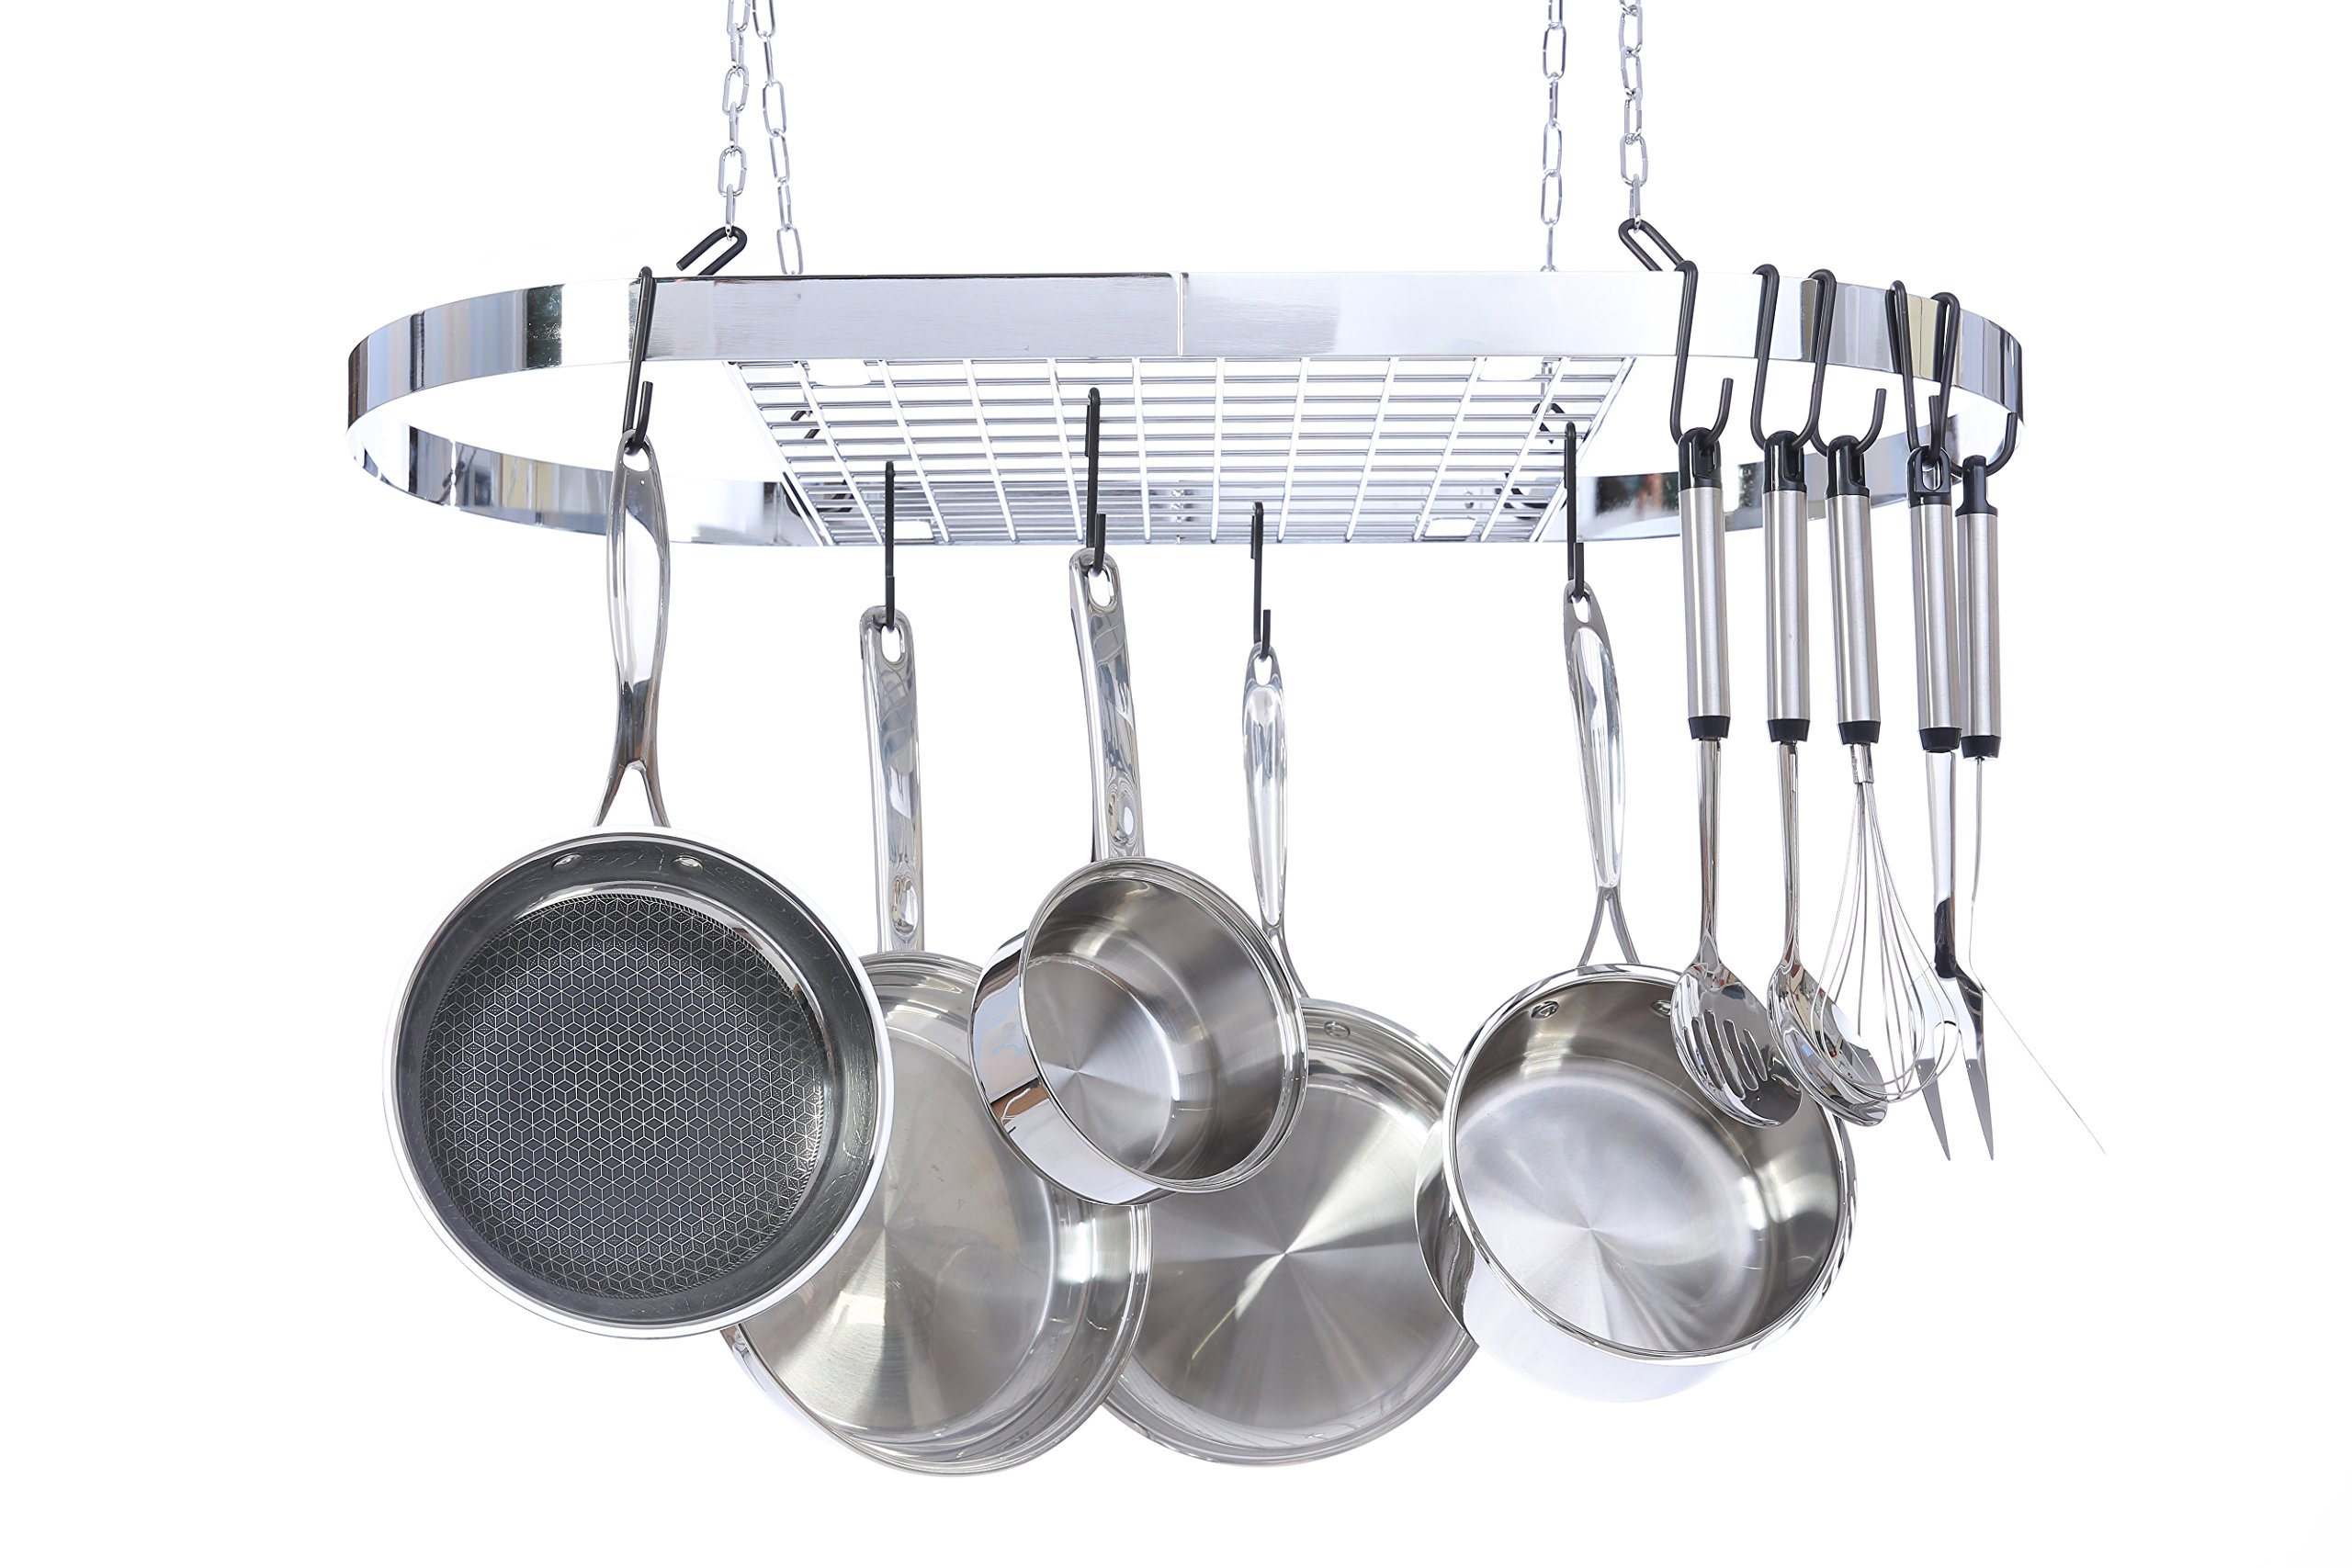 Kinetic Pot and Pan Rack with Ceiling Hooks - Premium Oval Mounted Oragnizer Rack with Multi Purpose Kitchen Organization and Storage for Home, Restaurant, Cookware, Utensils (Hanging Chrome) by Kinetic